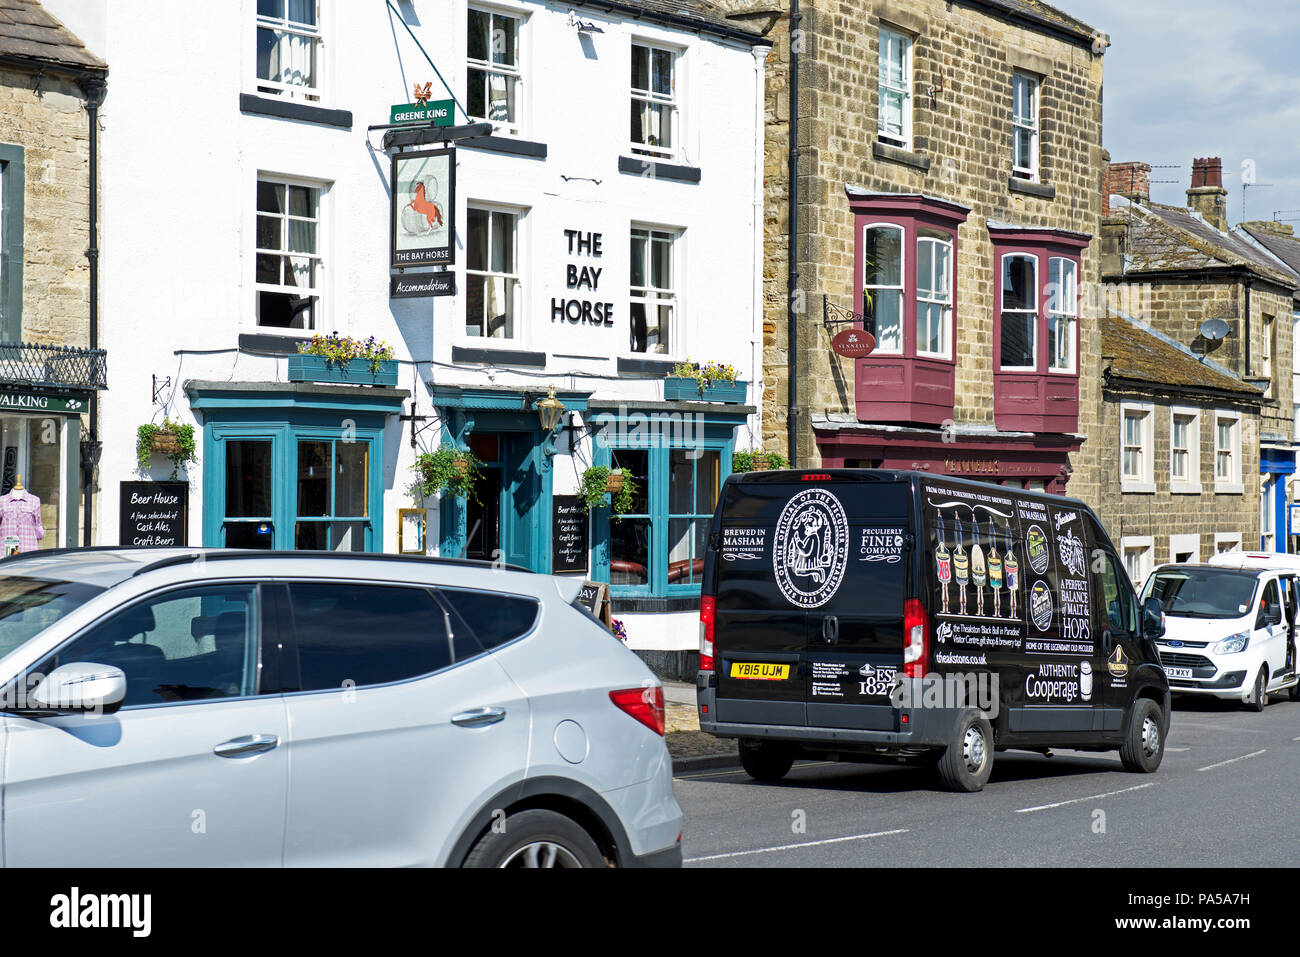 Theakston Brewery delivery van, passing the Bay Horse pub, Masham, North Yorkshire, England UK - Stock Image